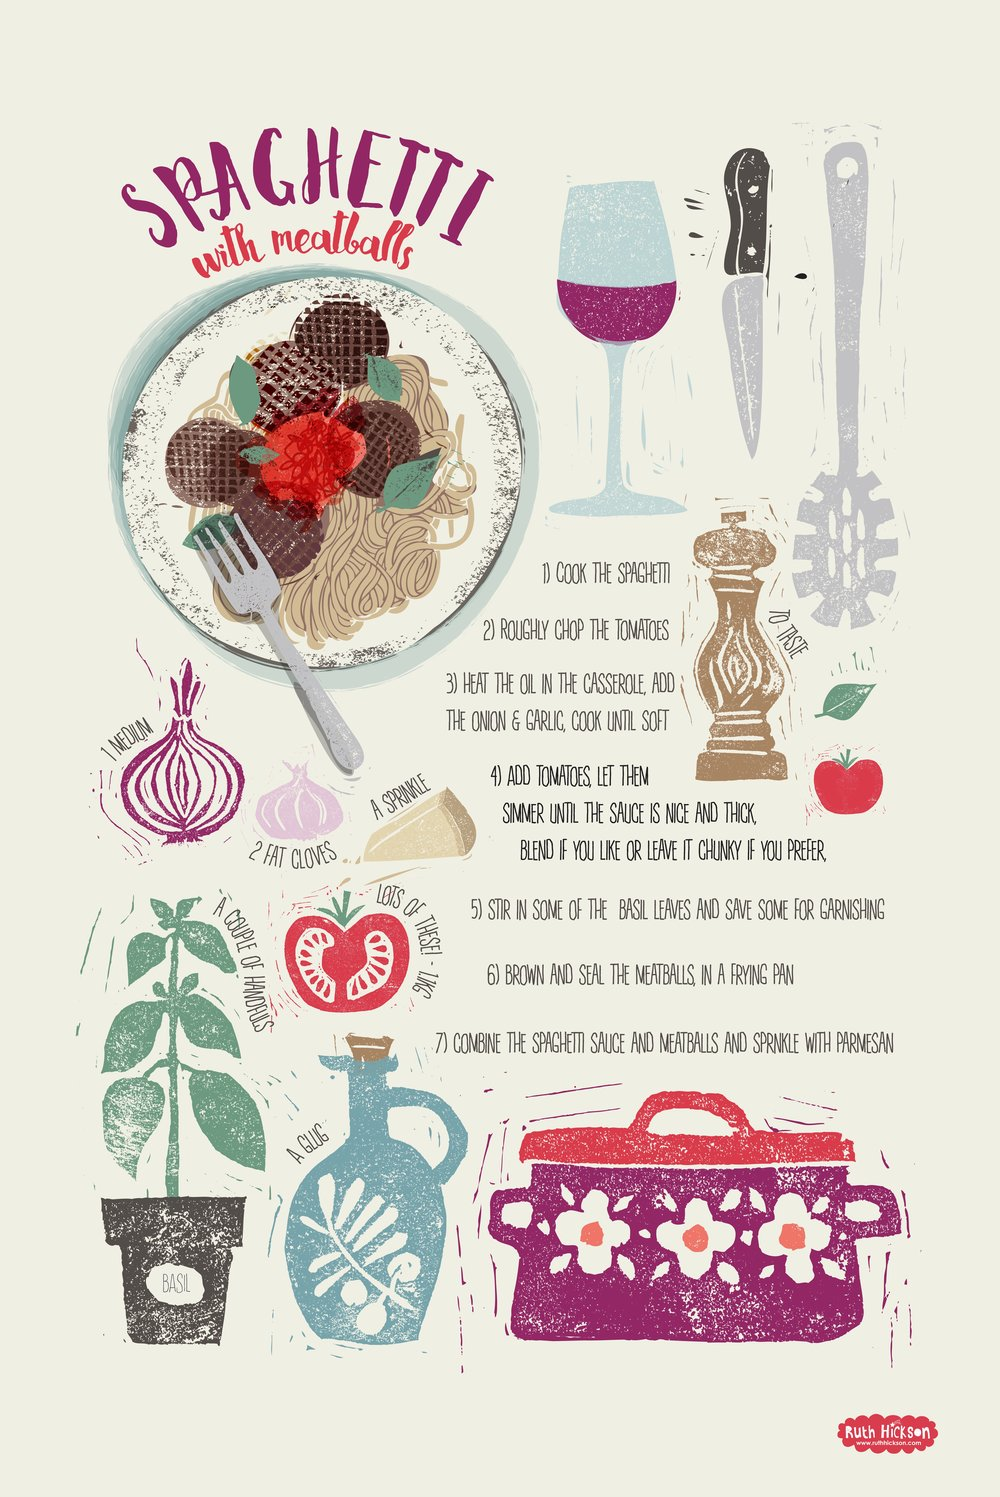 SP0ONFLOWER-RECIPE-TEATOWEL.jpg